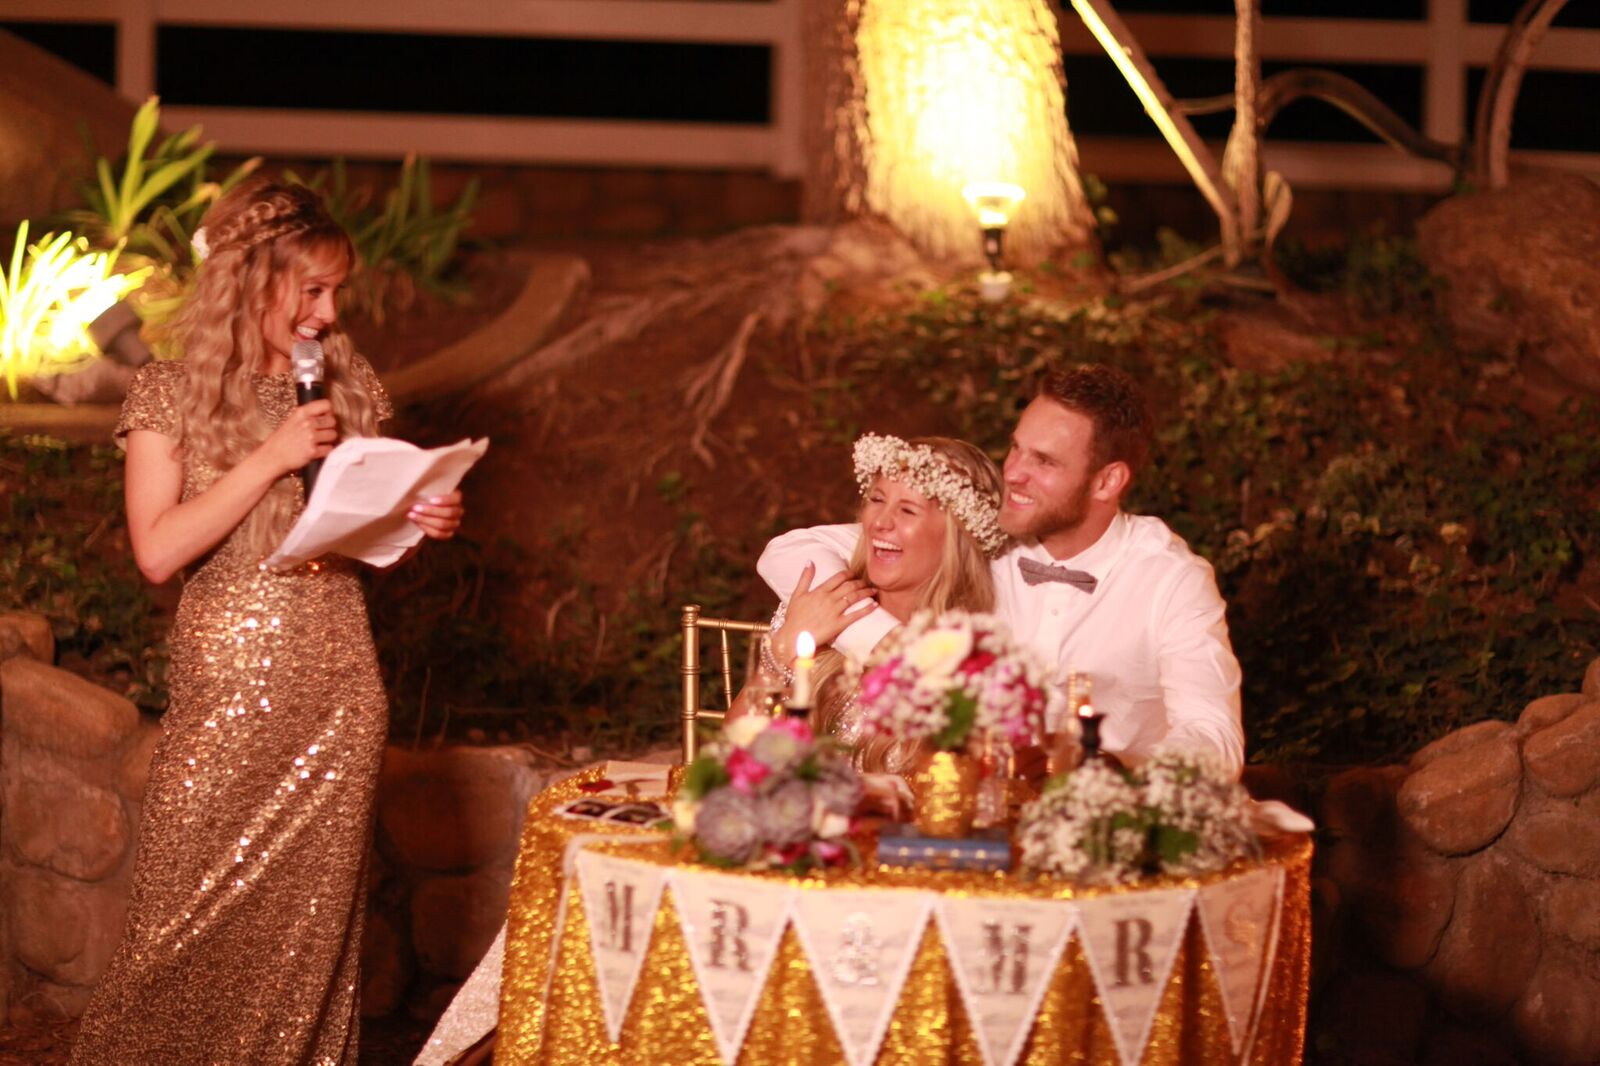 maid of honor giving toast to bride and groom at a wedding. las vegas wedding planner.